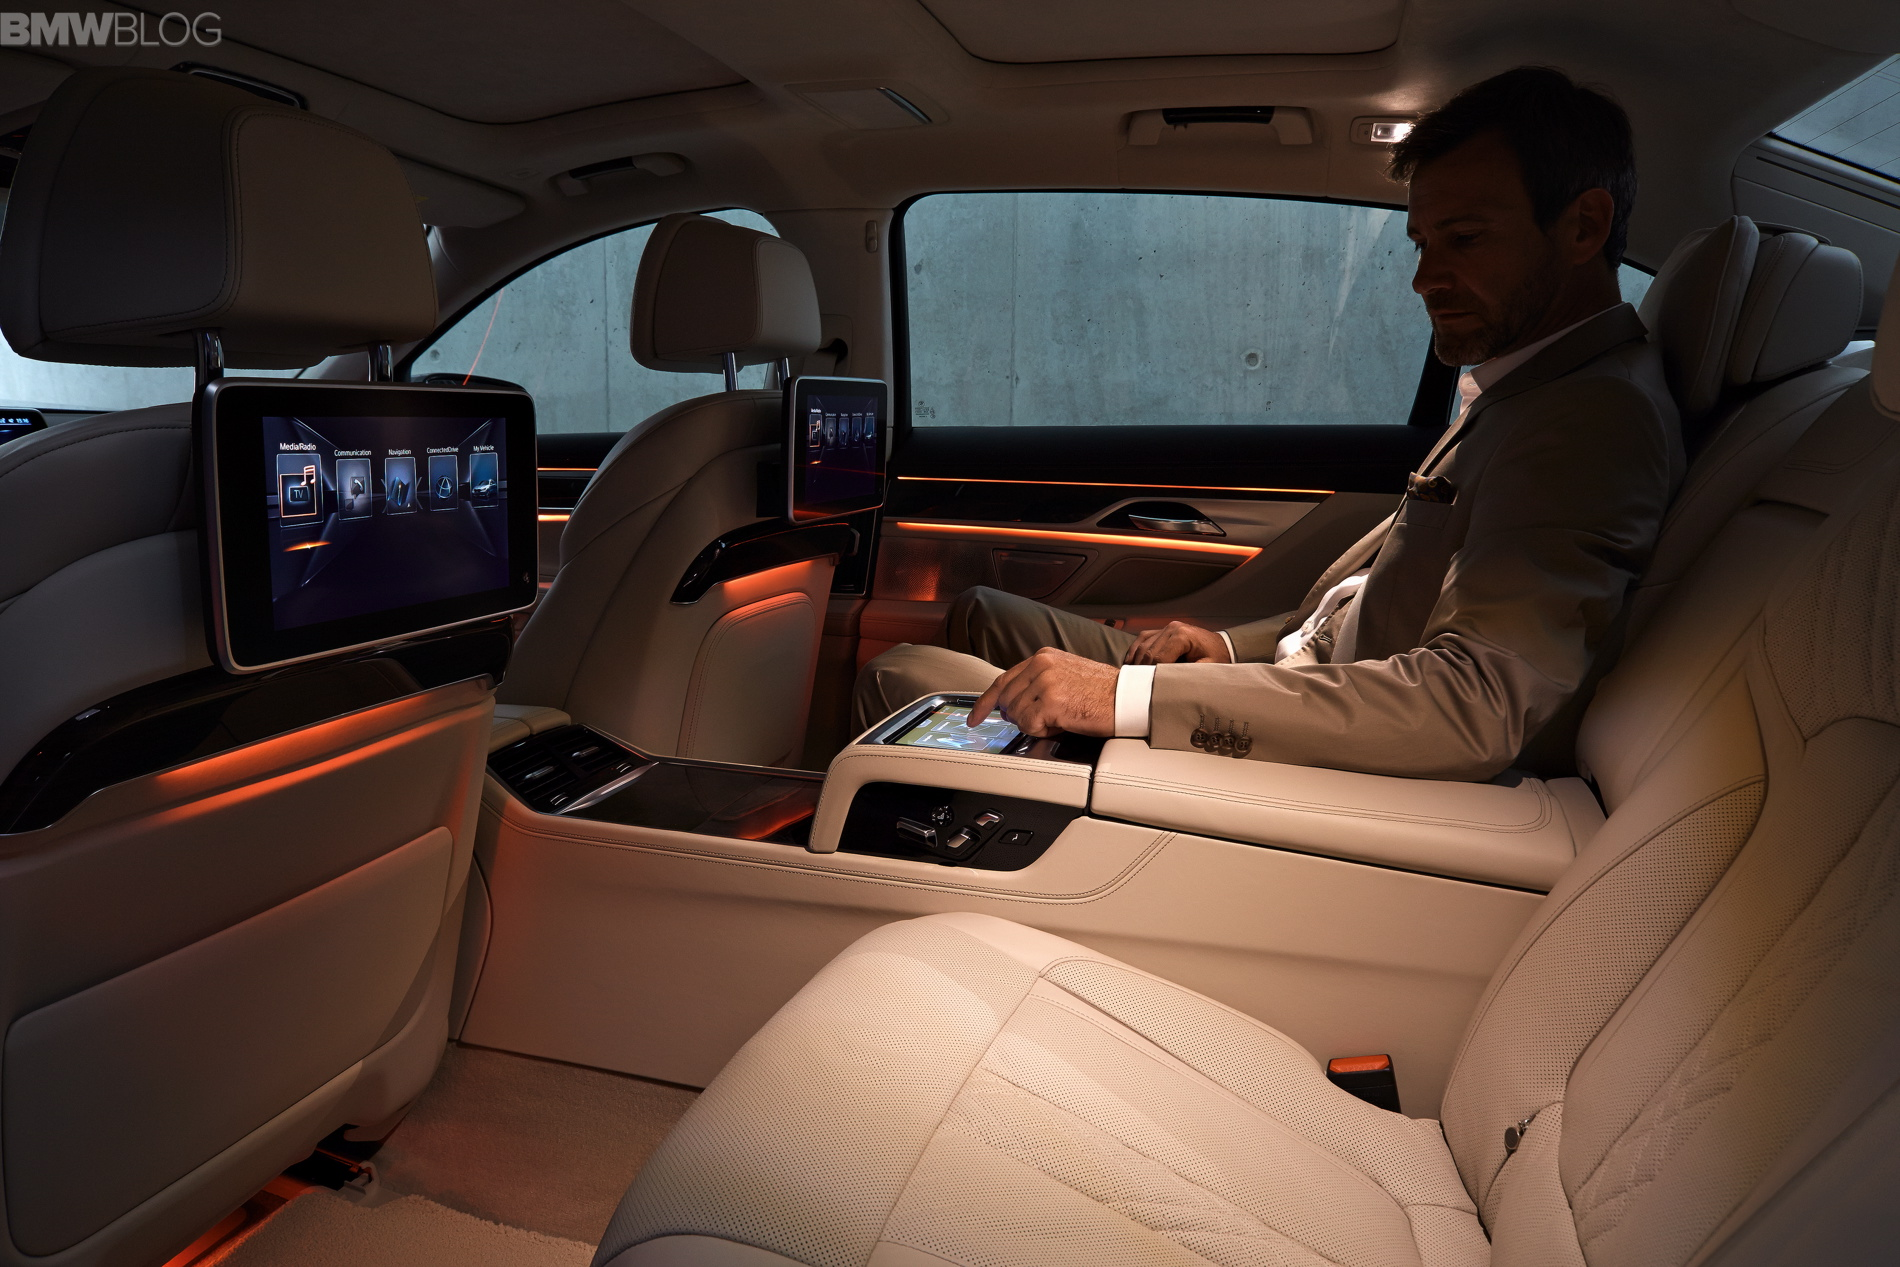 2016 Bmw 7 Series Cabin Technology And